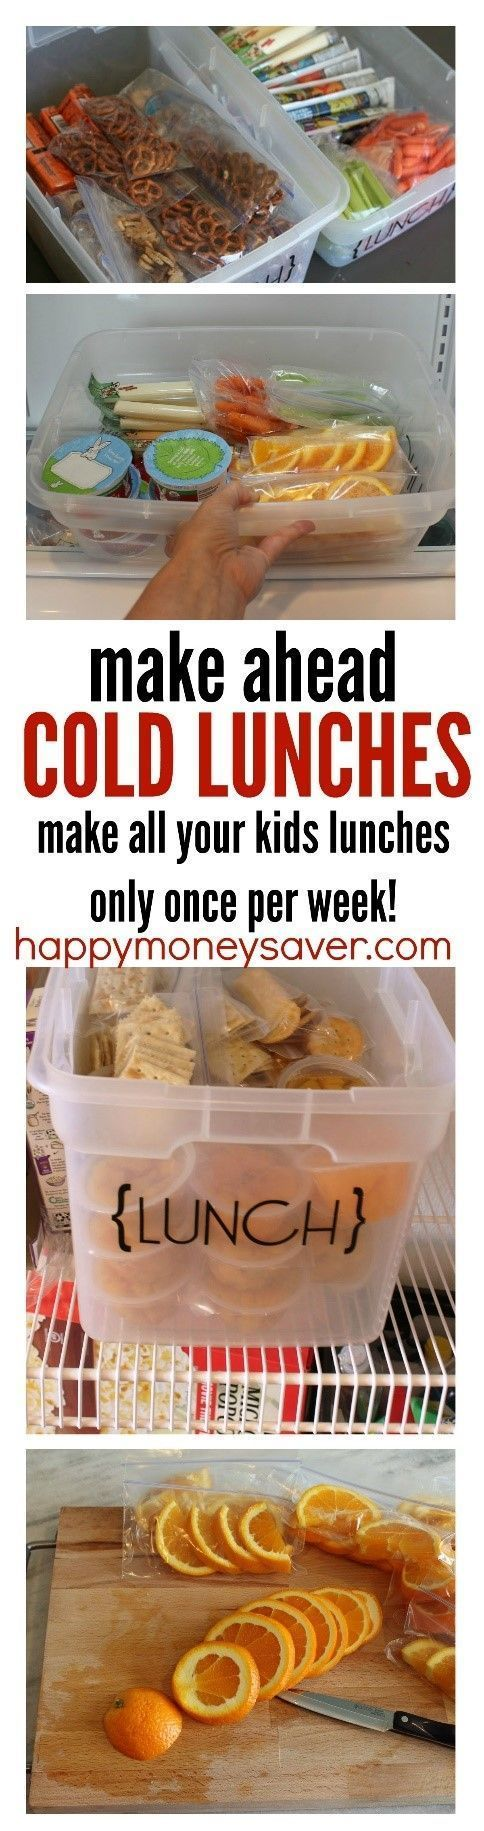 Make Ahead Cold Lunches {A Week's Worth of Lunches in a day!}